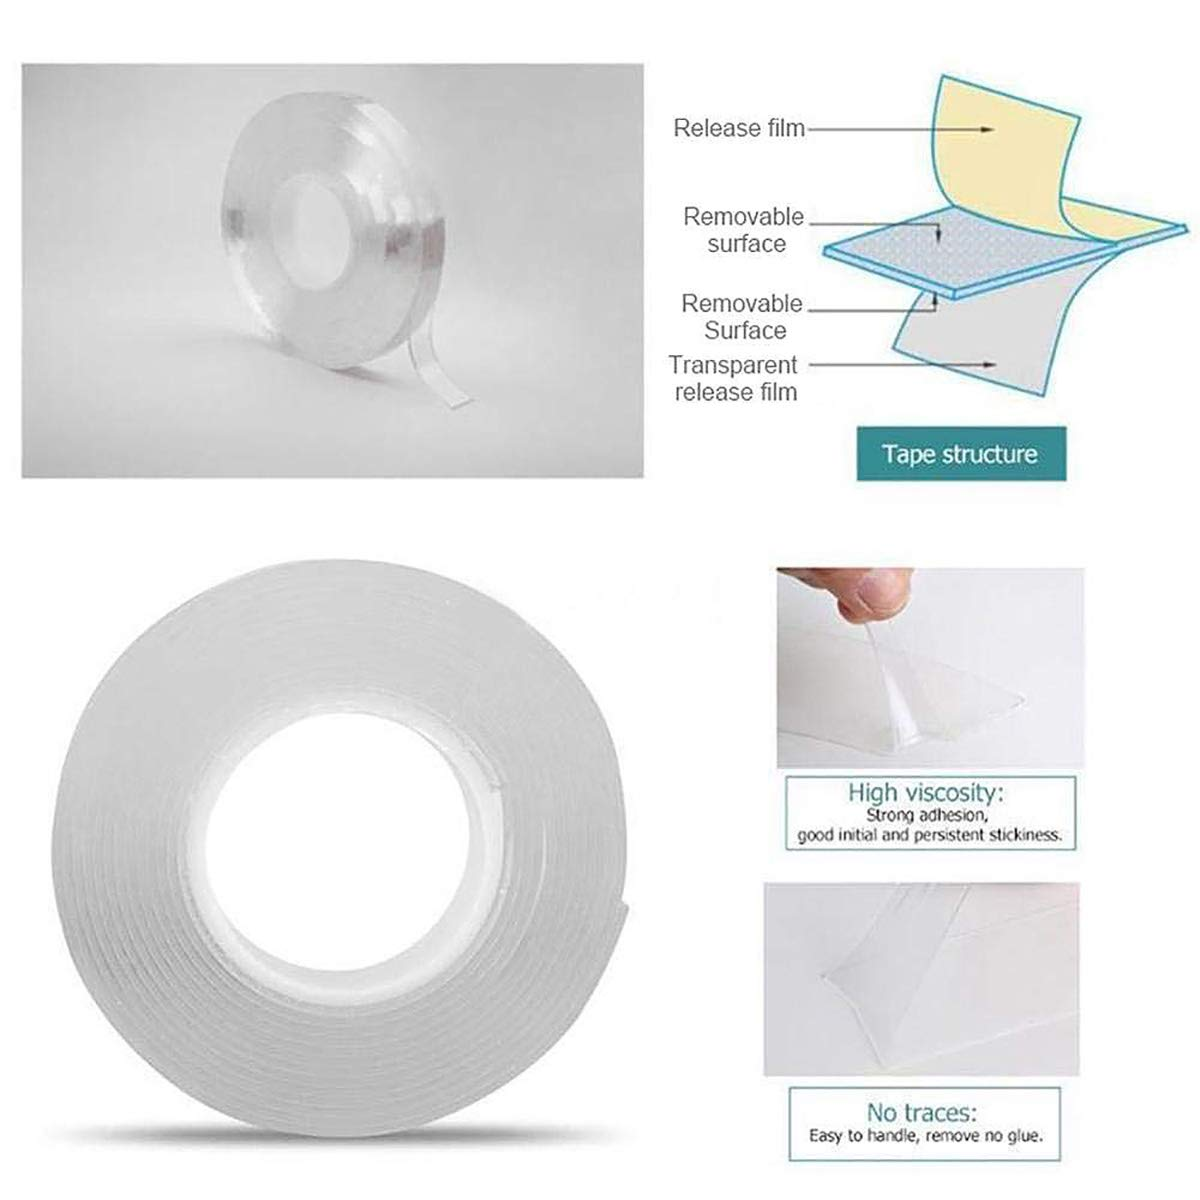 Transparent, 2mm Kitchen Cabinets and so on Reusable Traceless,Stick to Glass Traceless Washable Adhesive Tape nanoTape CornicLife 1M//3.3Ft Reusable Adhesive Silicone Tape,Free to Remove Metal